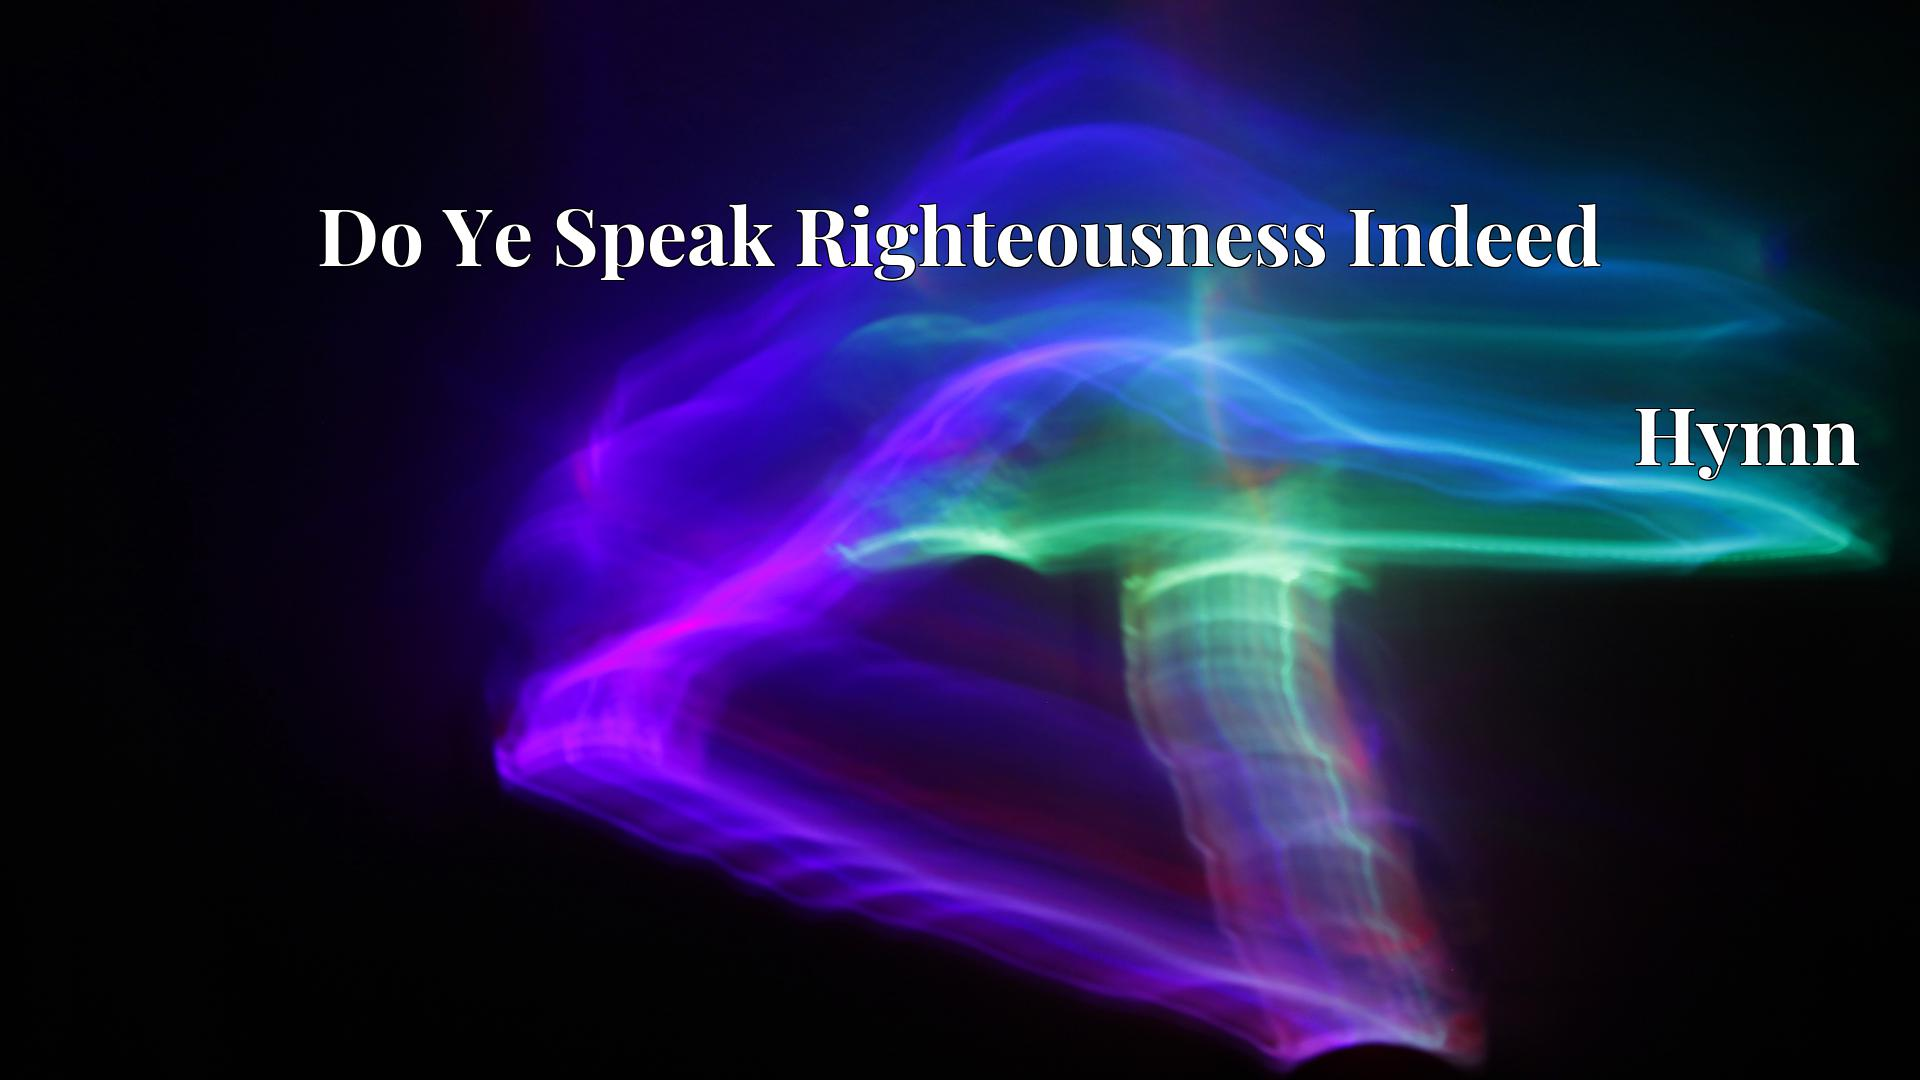 Do Ye Speak Righteousness Indeed - Hymn